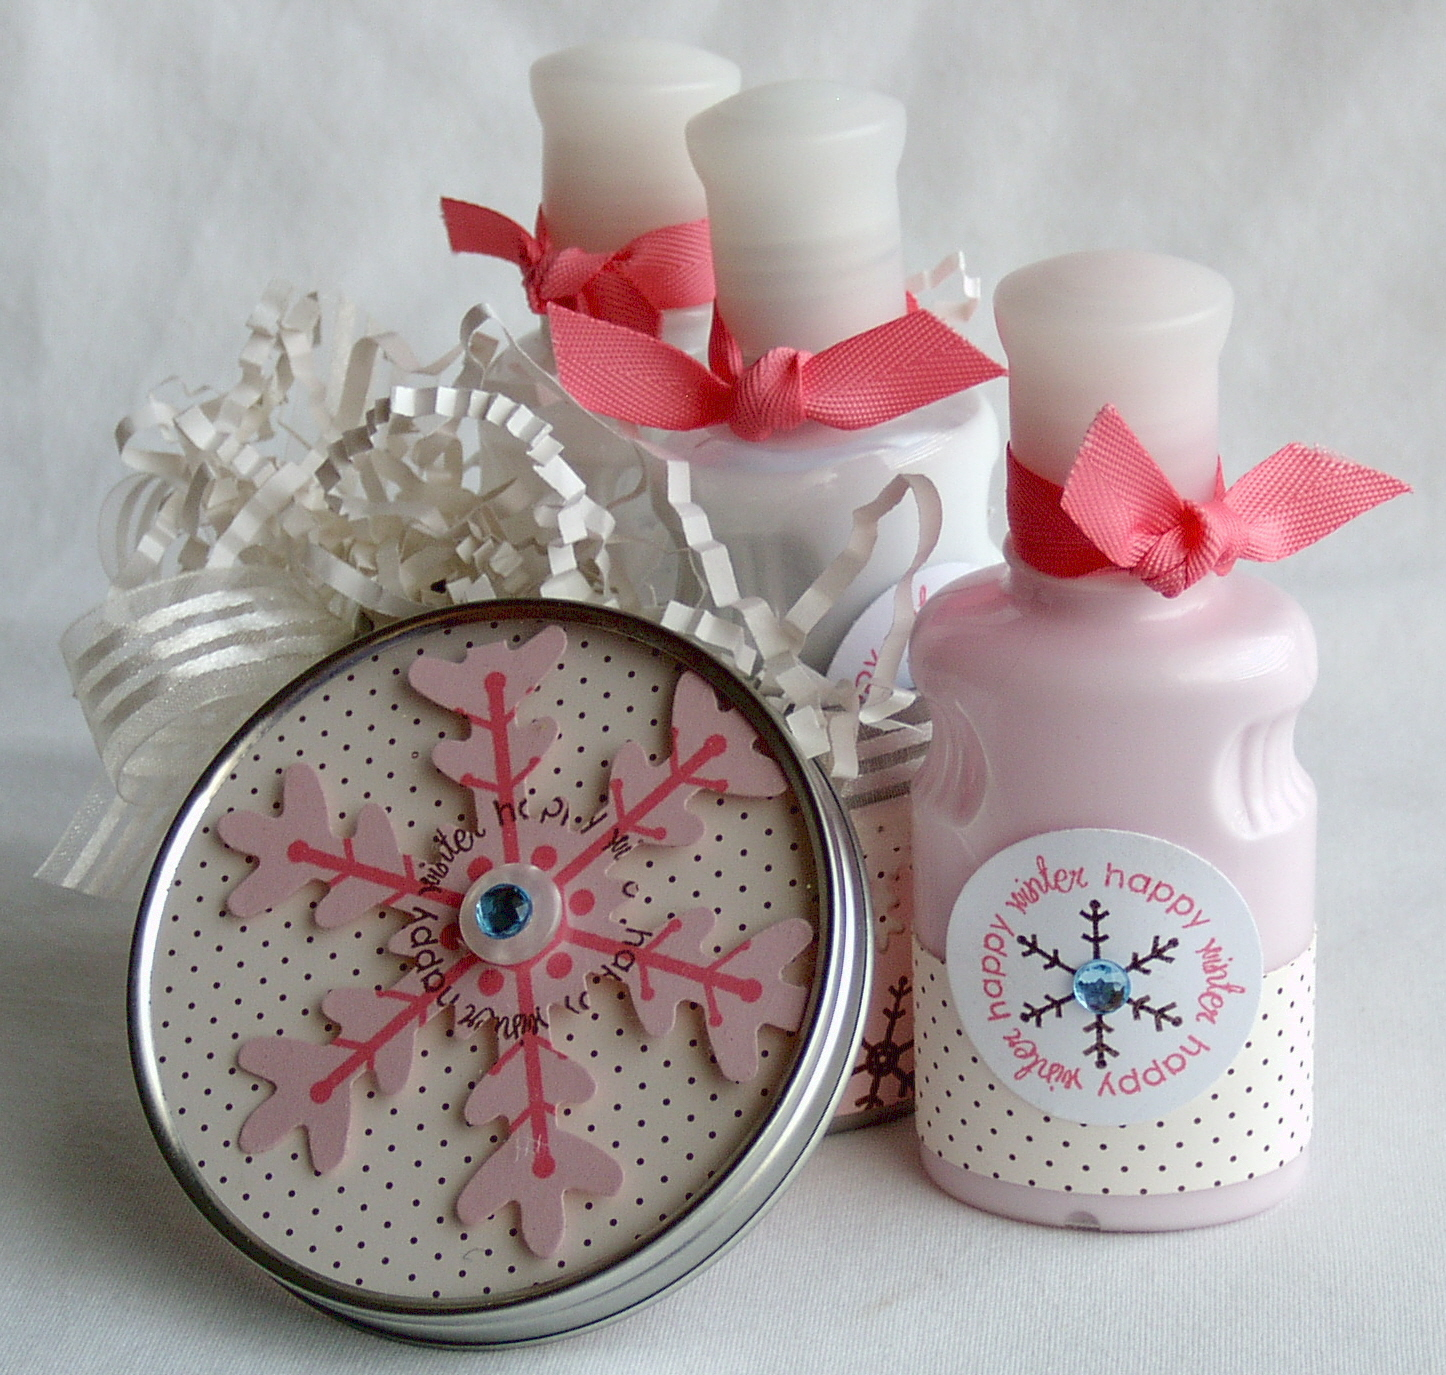 Snowfall Winter Gift set - lotions and lid